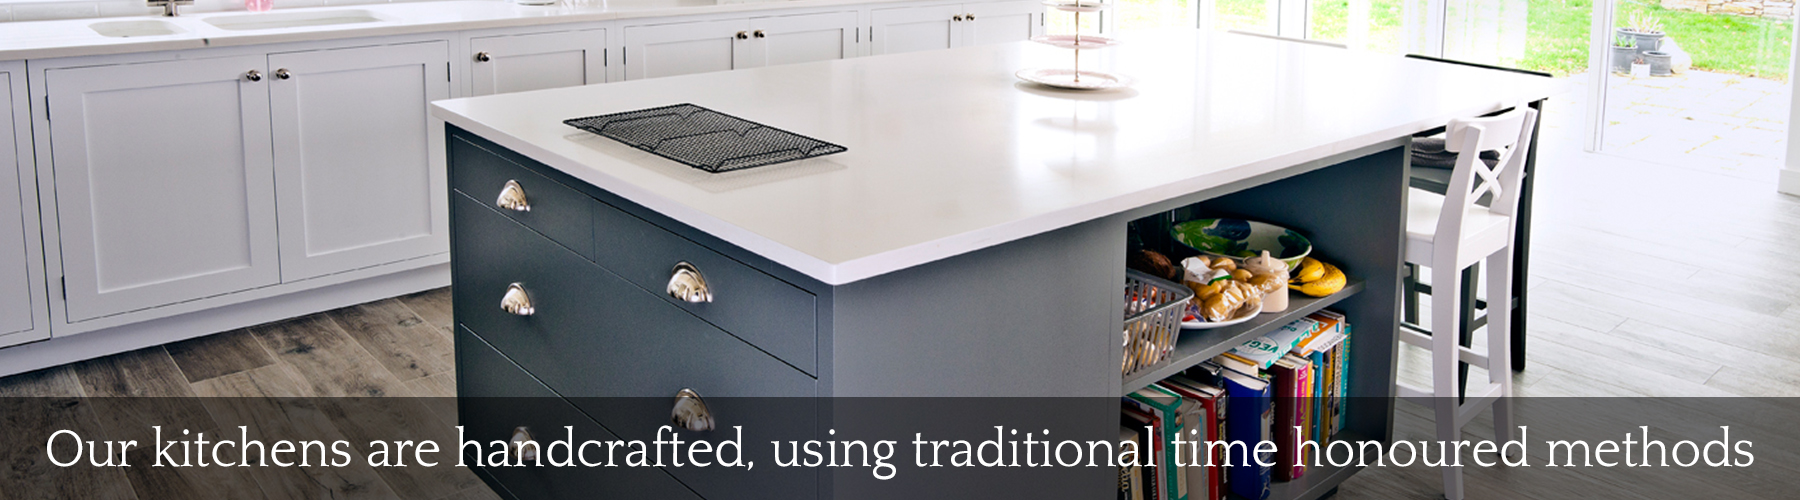 bespoke kitchens from eternal kitchens, somerset and the south west